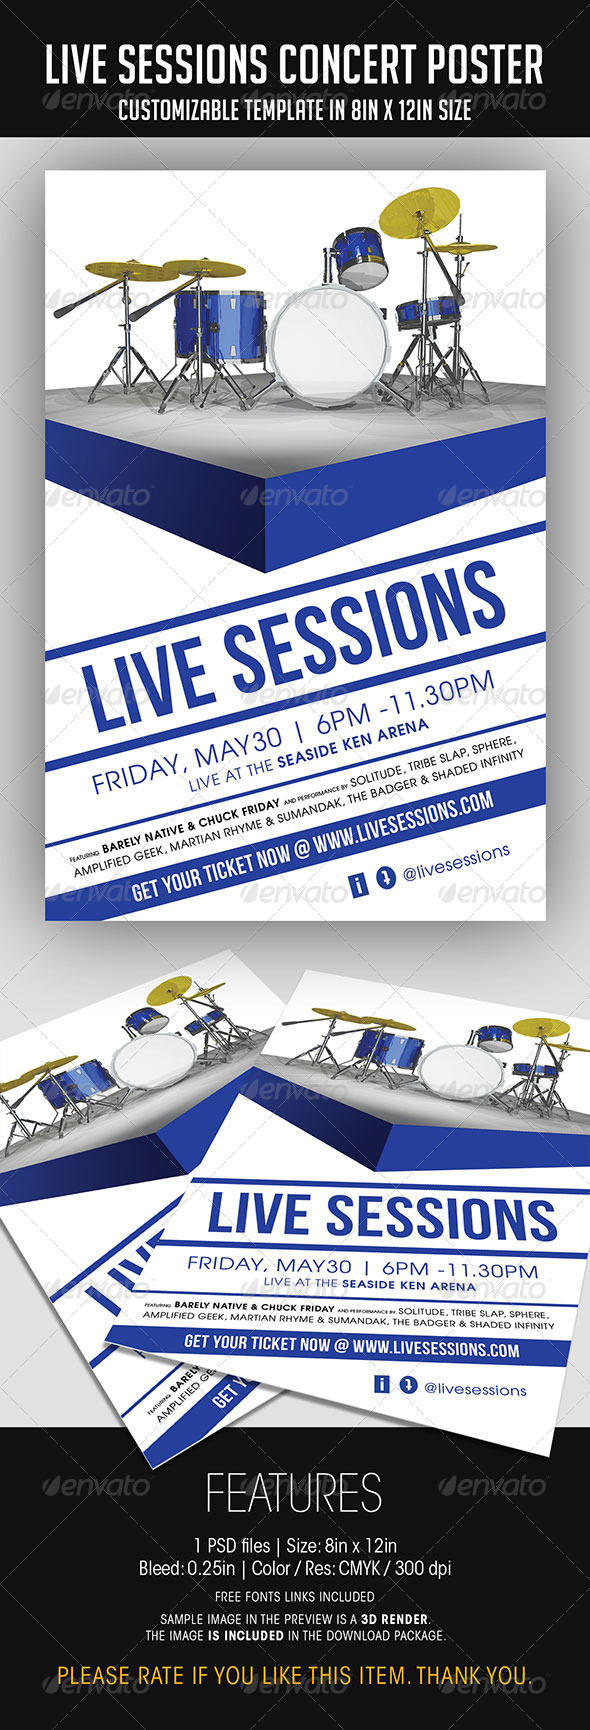 GraphicRiver Live Session Concert Poster 7550991